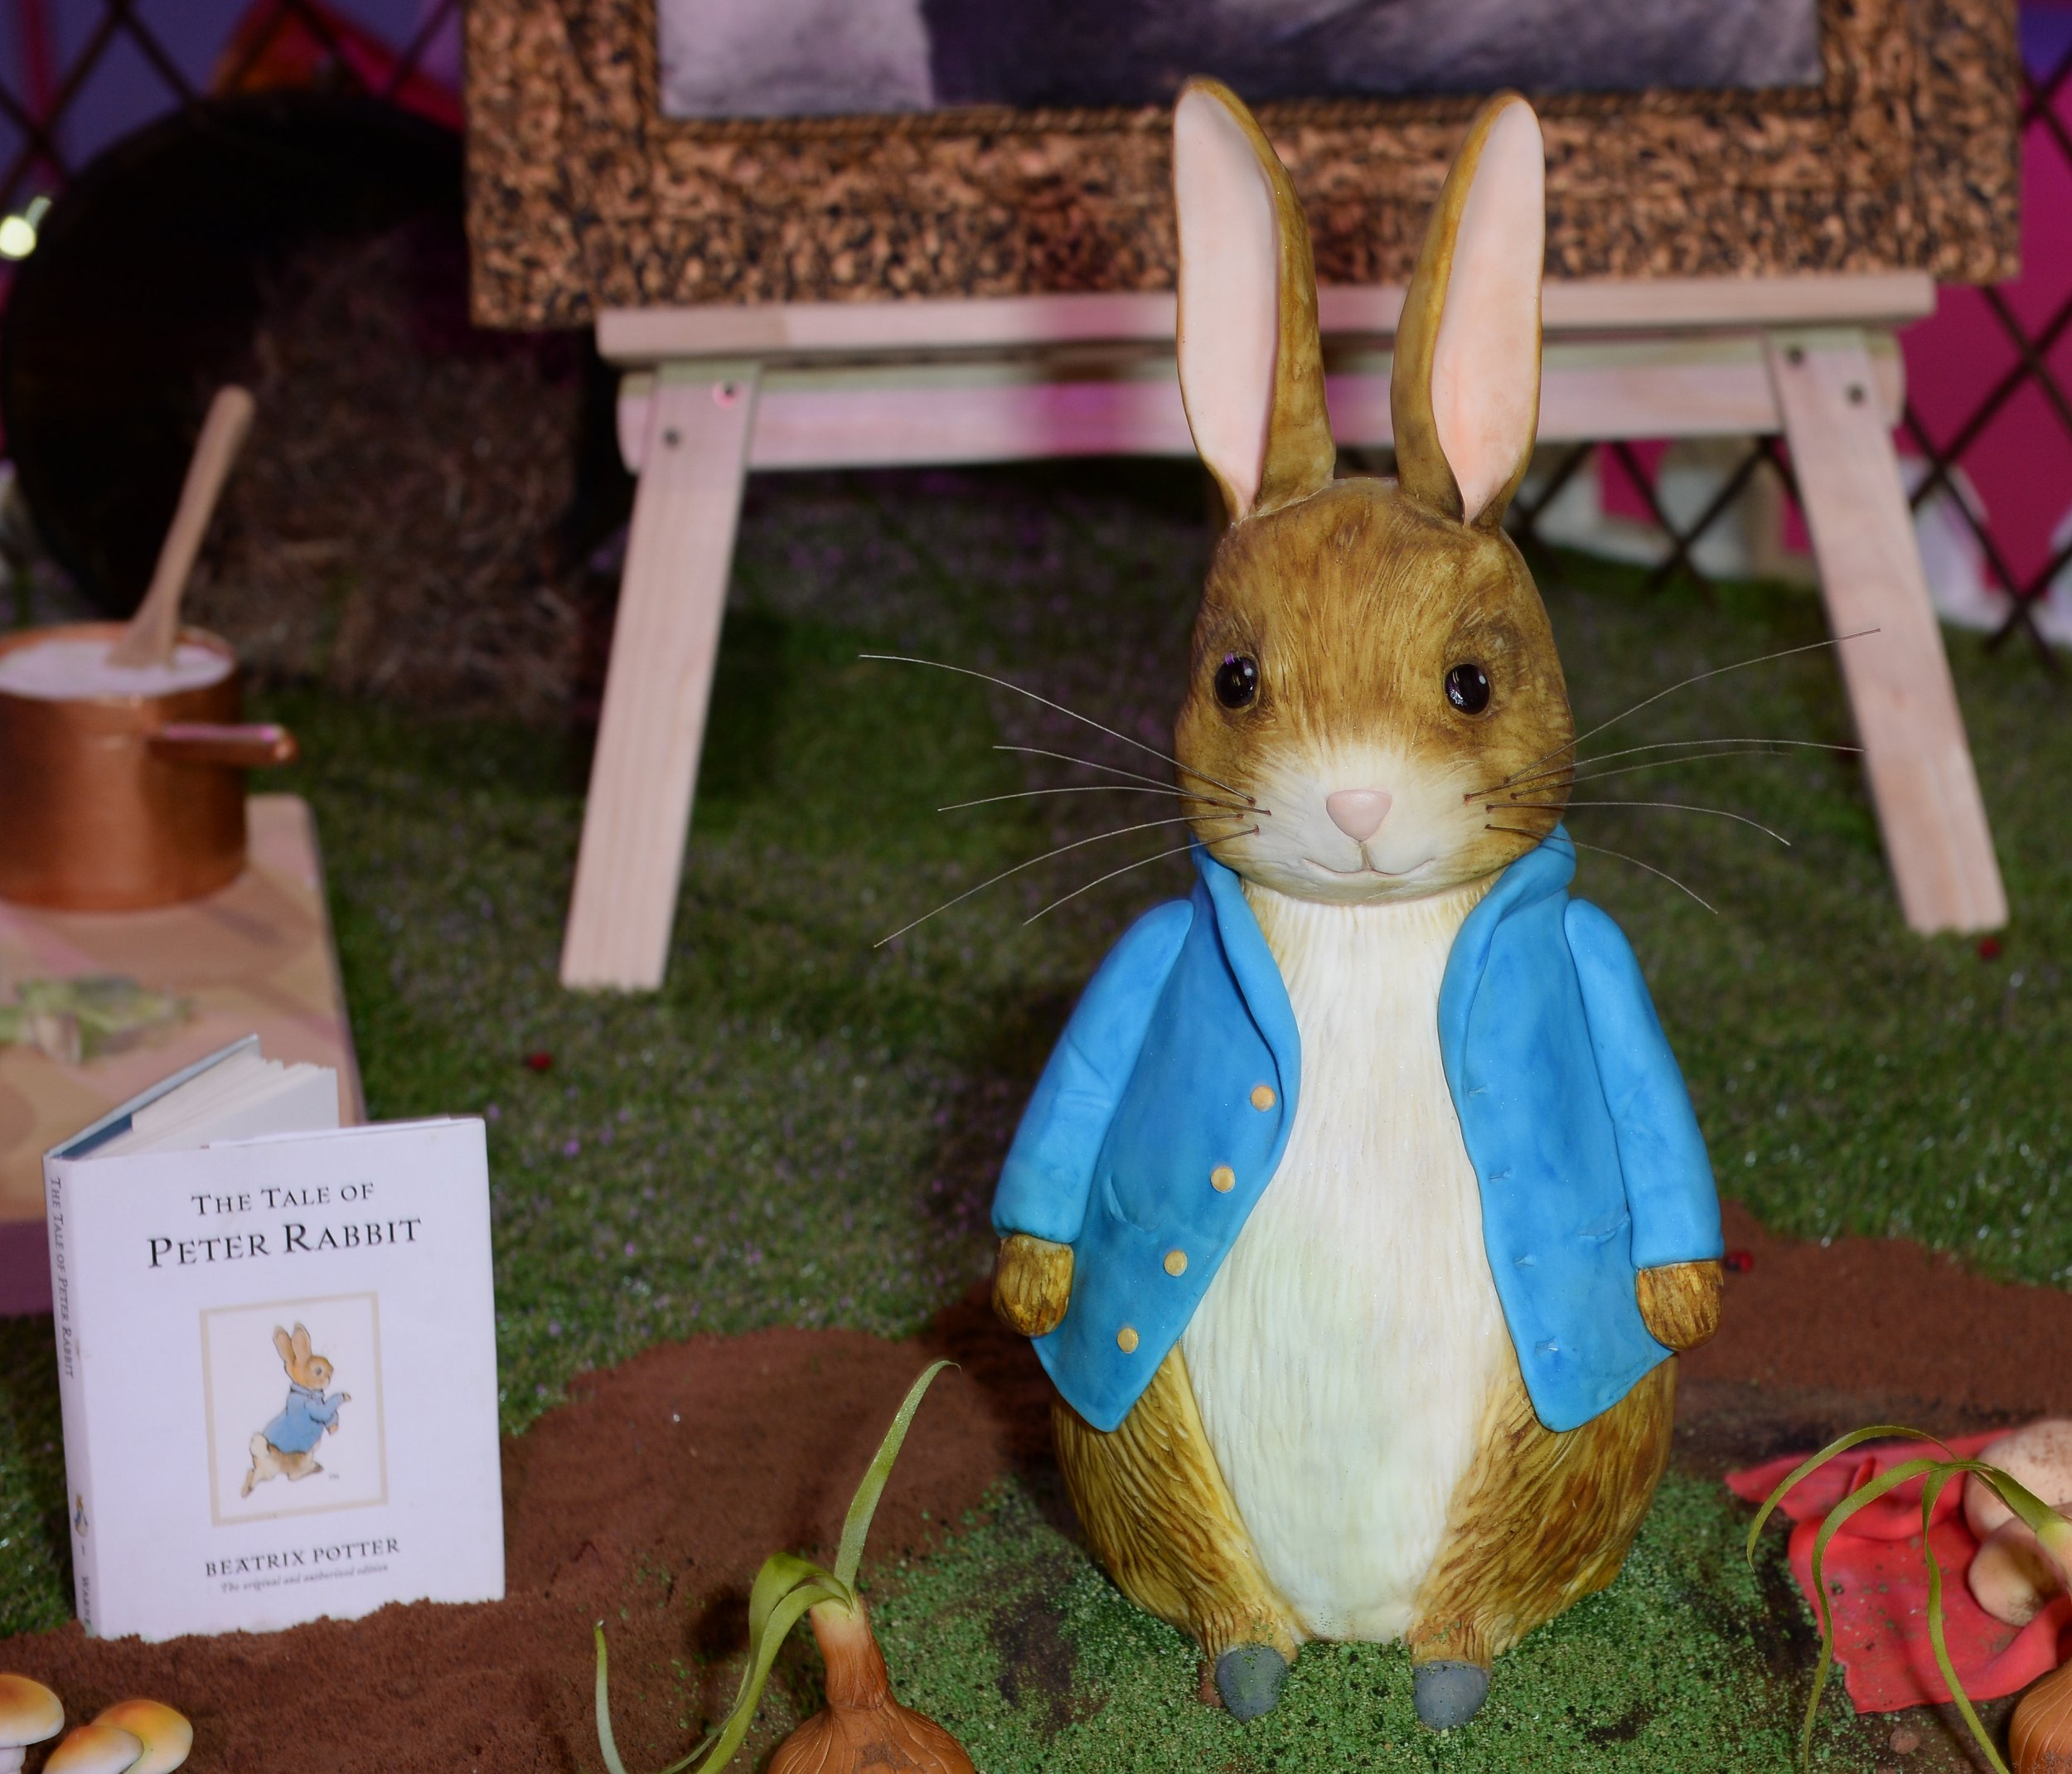 Here are some of the fantastic cakes at this year's Cake and Bake show